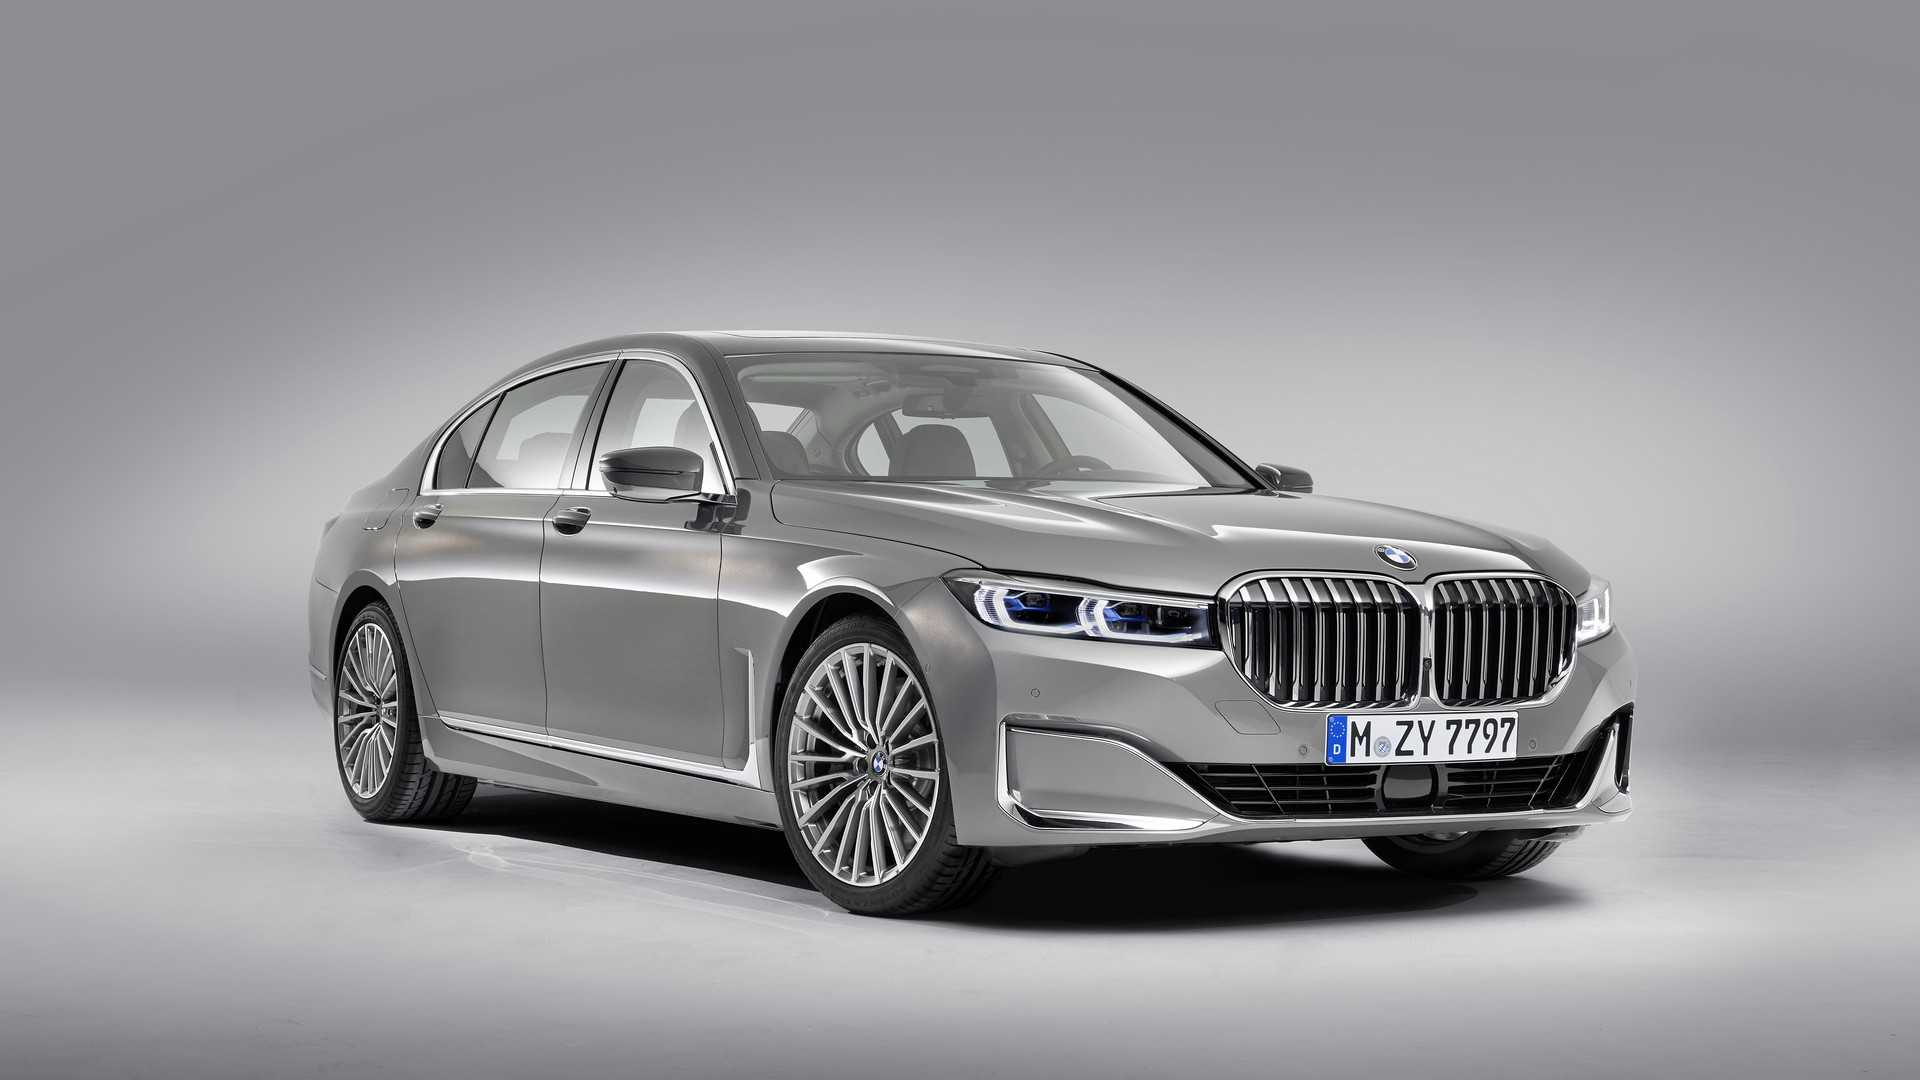 Bmw 7 Series Facelift Goes On Sale In April Starting At 69430